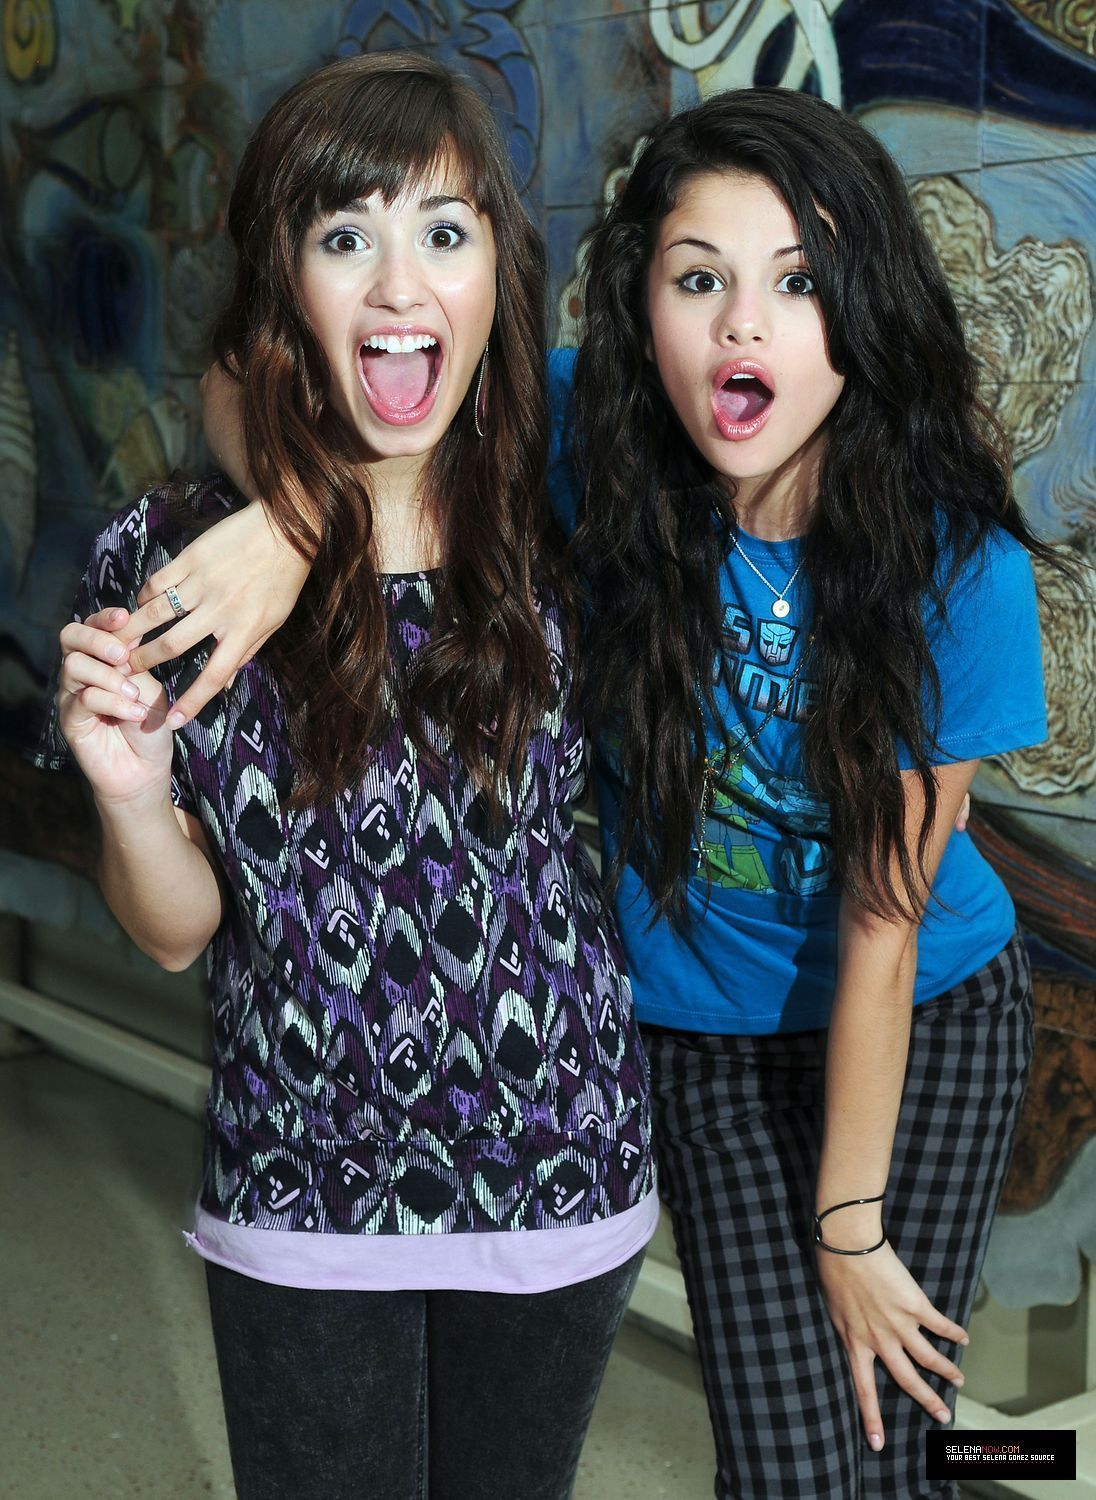 Demi lovato & Selena Gomez wallpaper HD for screensaver  - demi lovato and selena gomez wallpapers